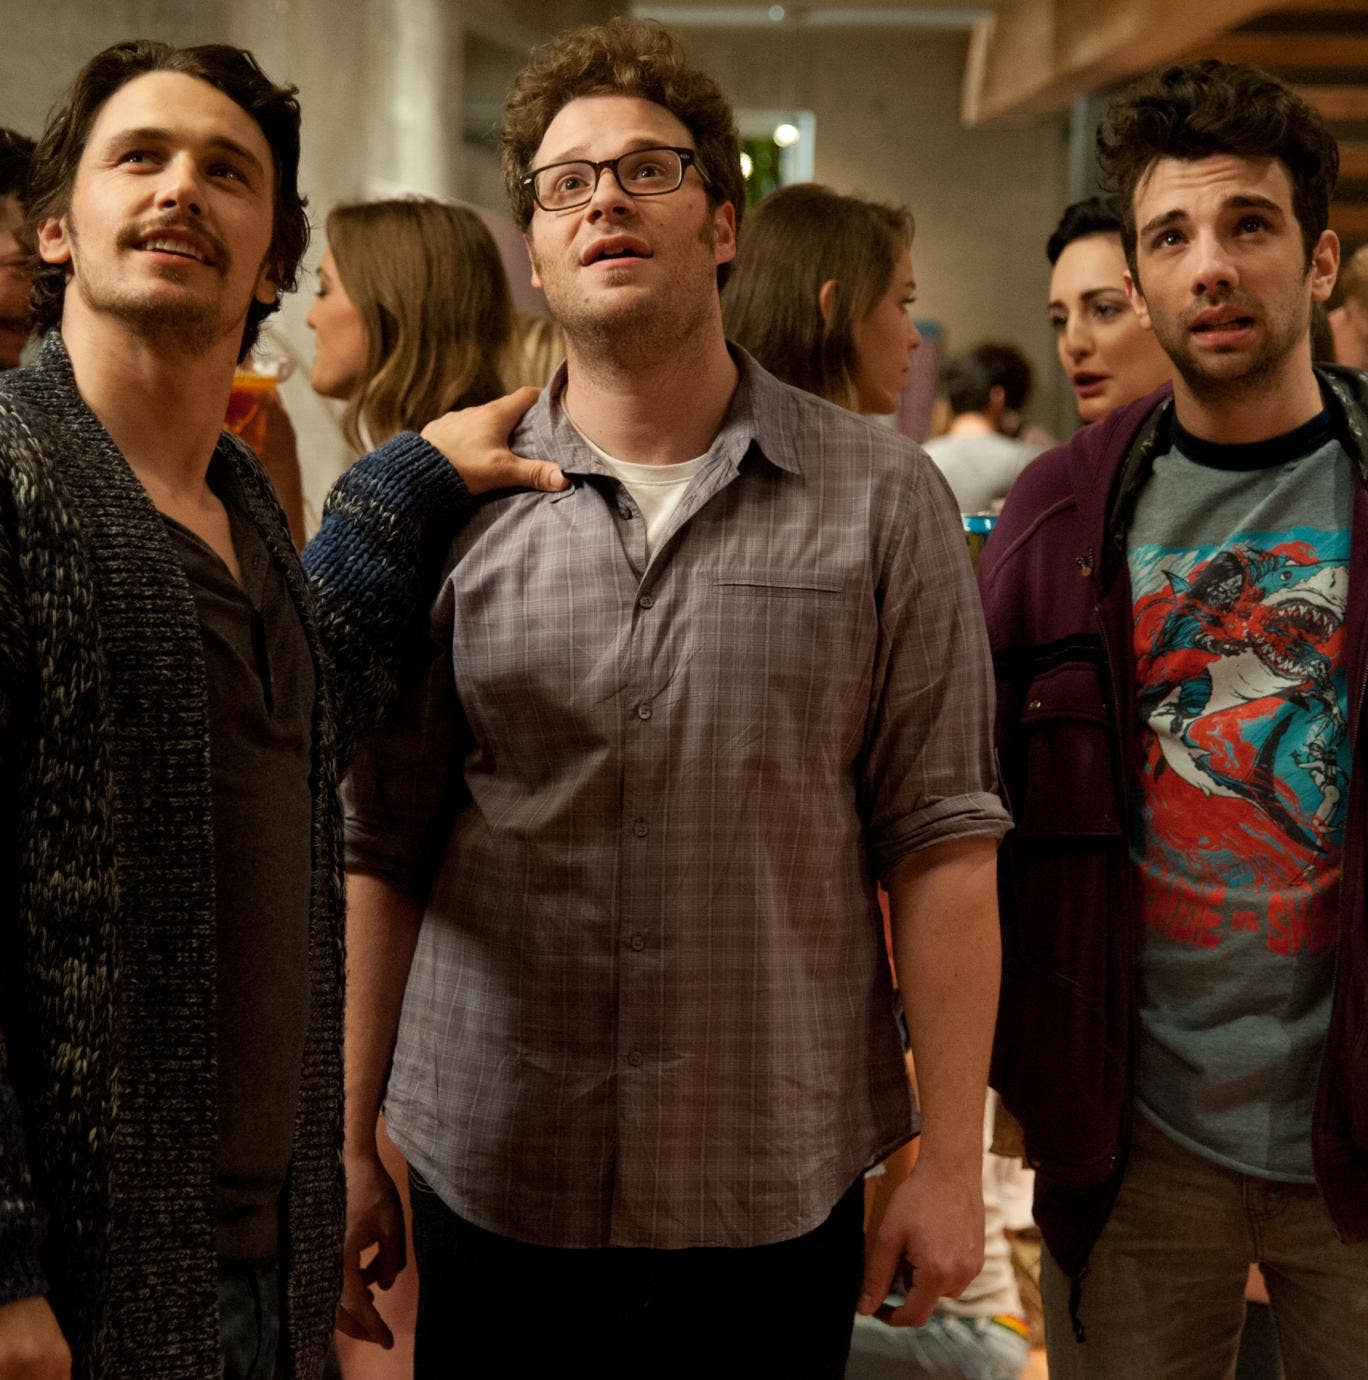 Judd Apatow's make-it-up-as-you-go-along approach is ideal for comedies about stoners and slackers slouching towards adulthood